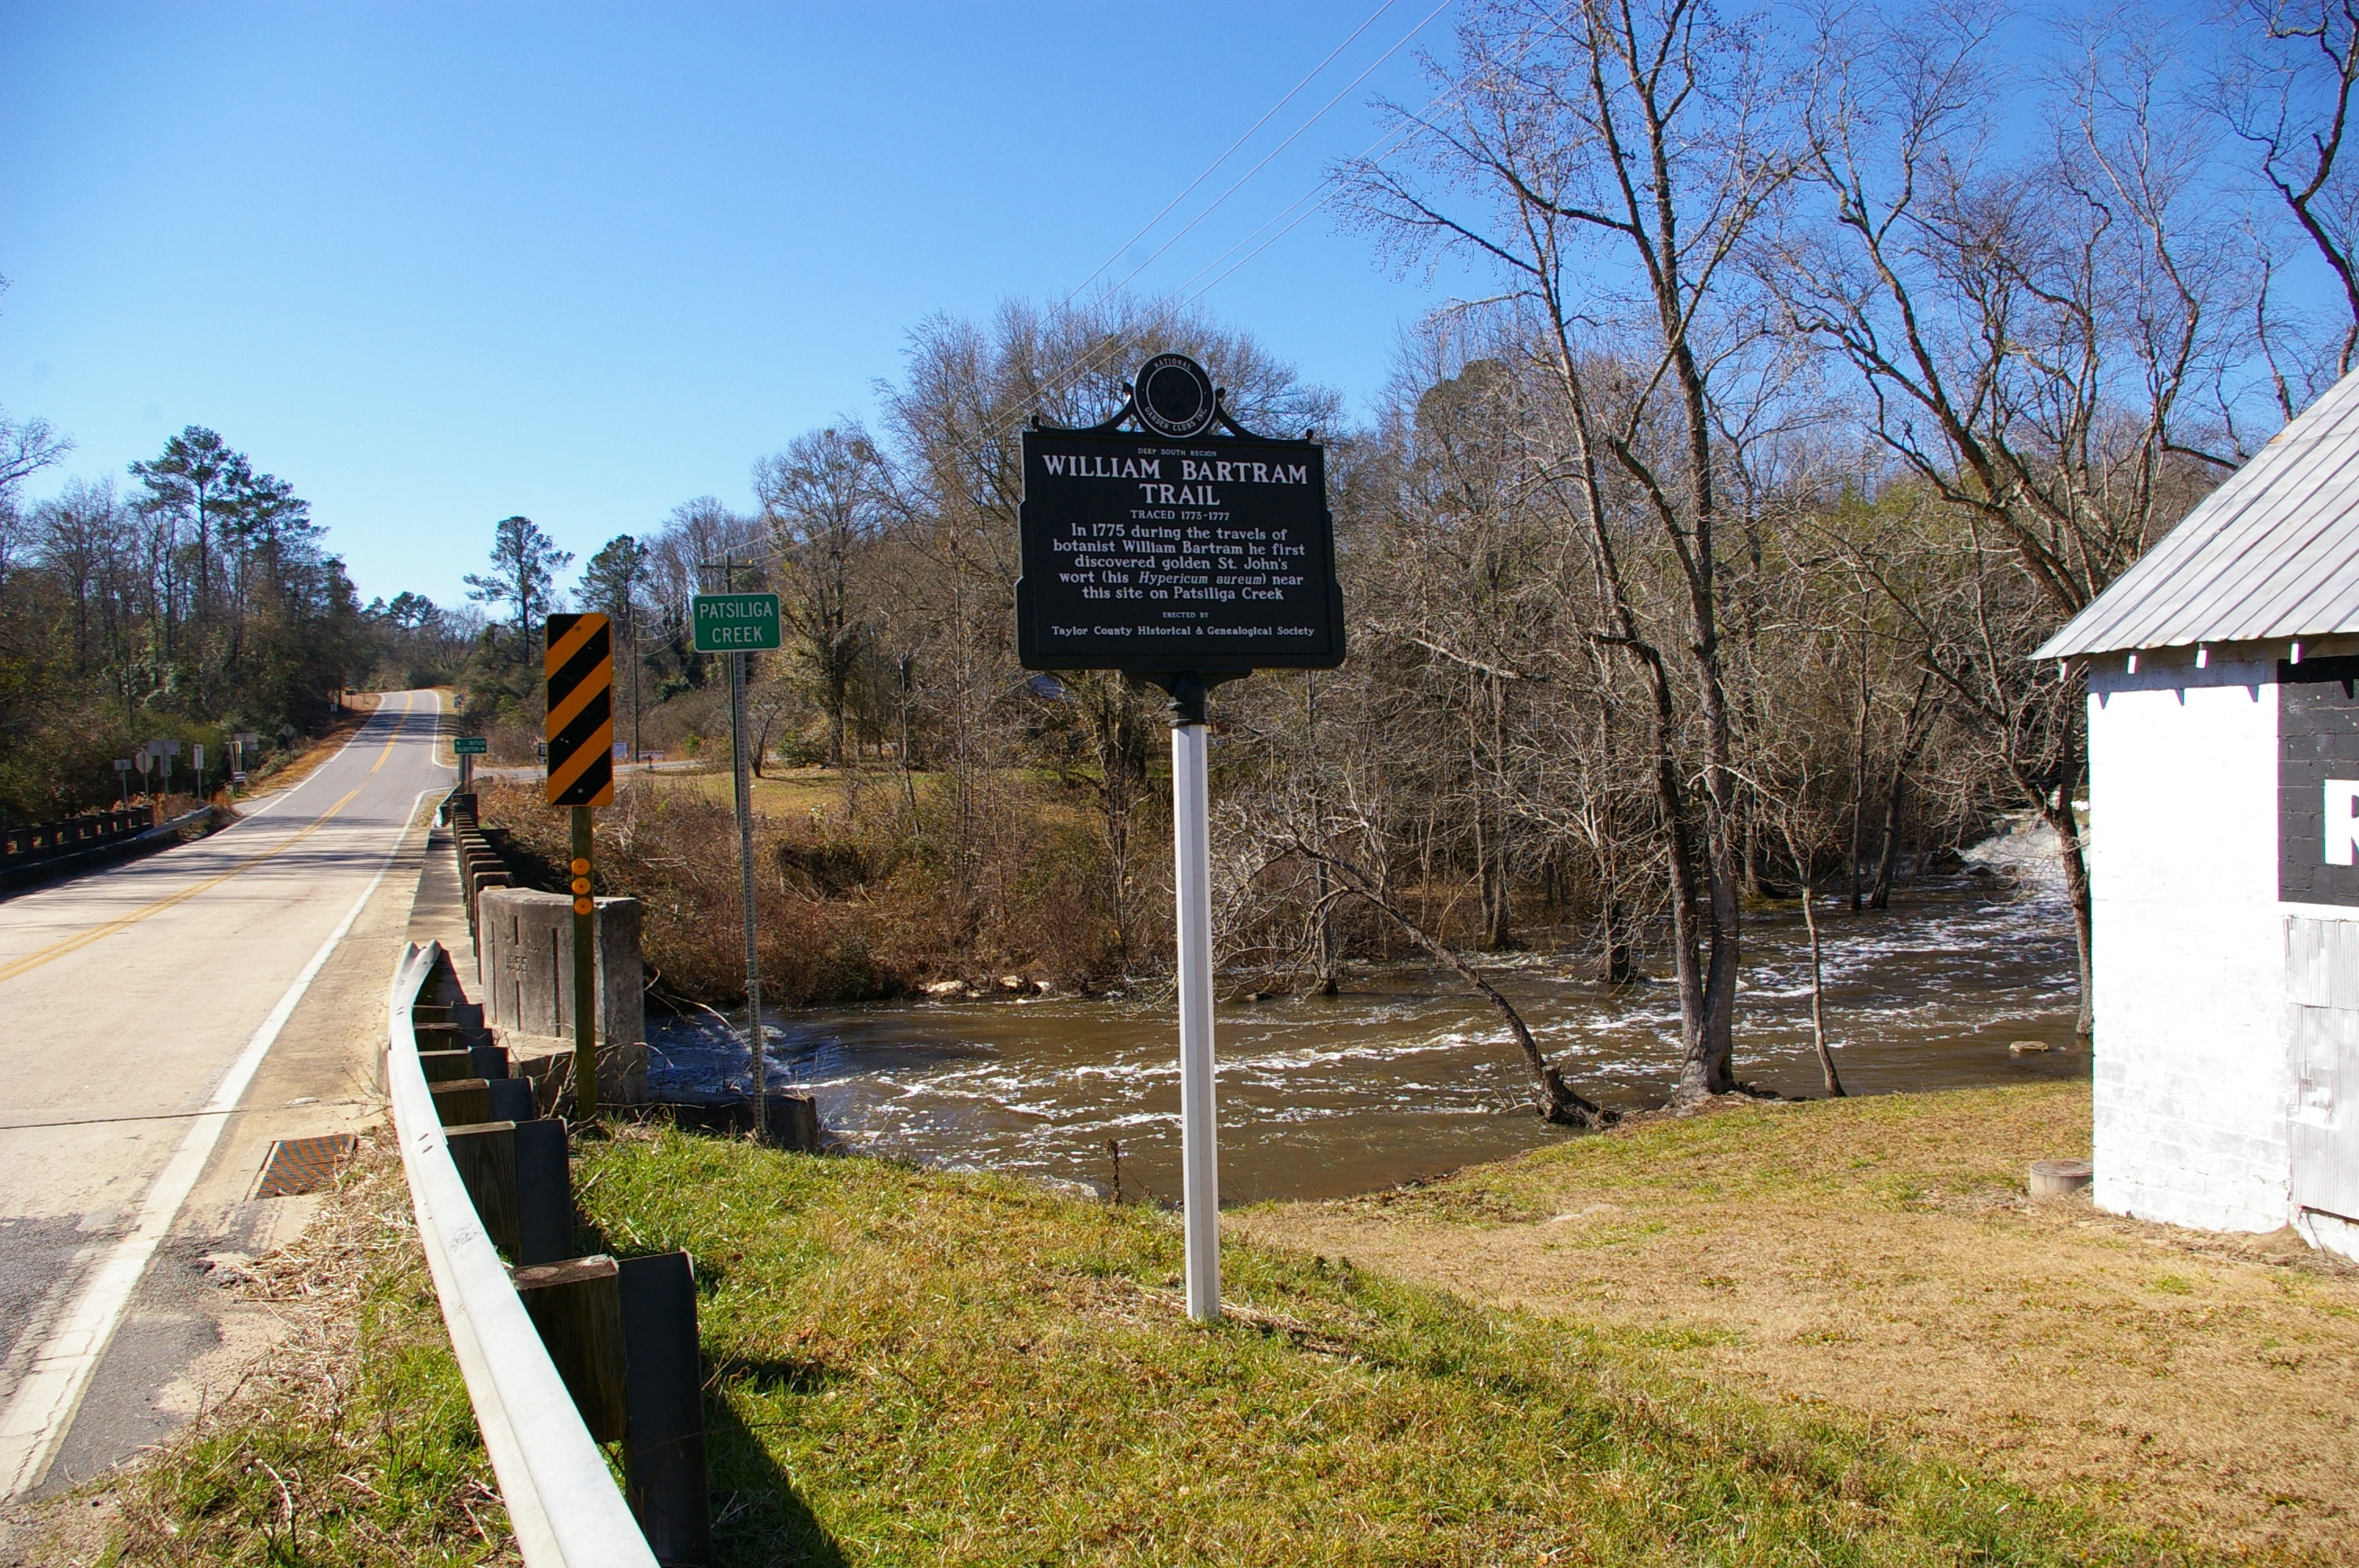 William Bartram Trail Marker